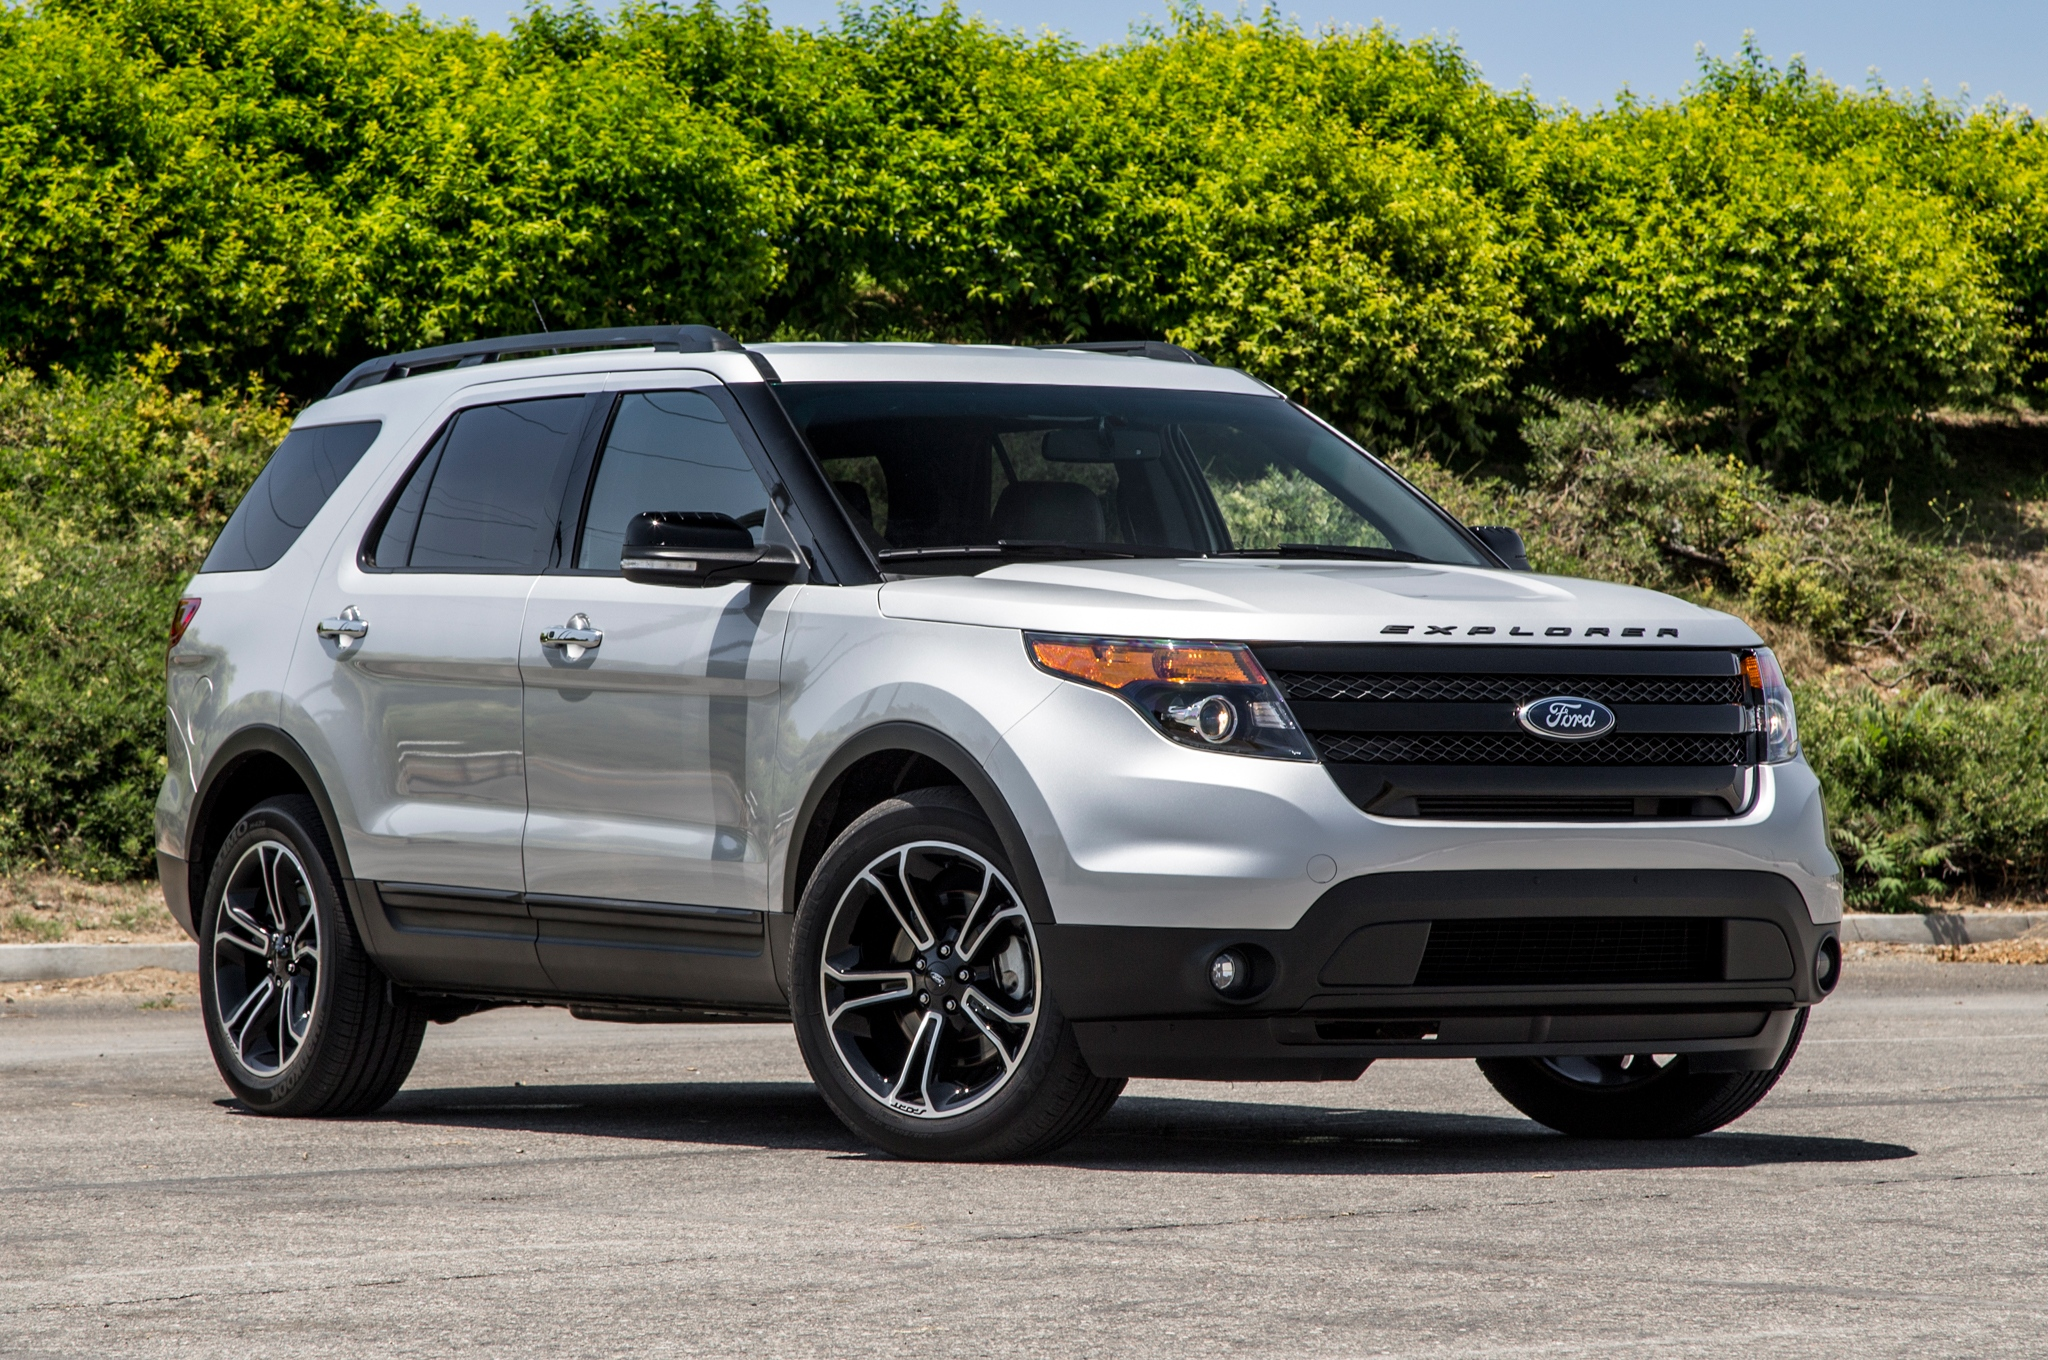 2013-ford-explorer-sport-ecoboost-4wd-front-view1